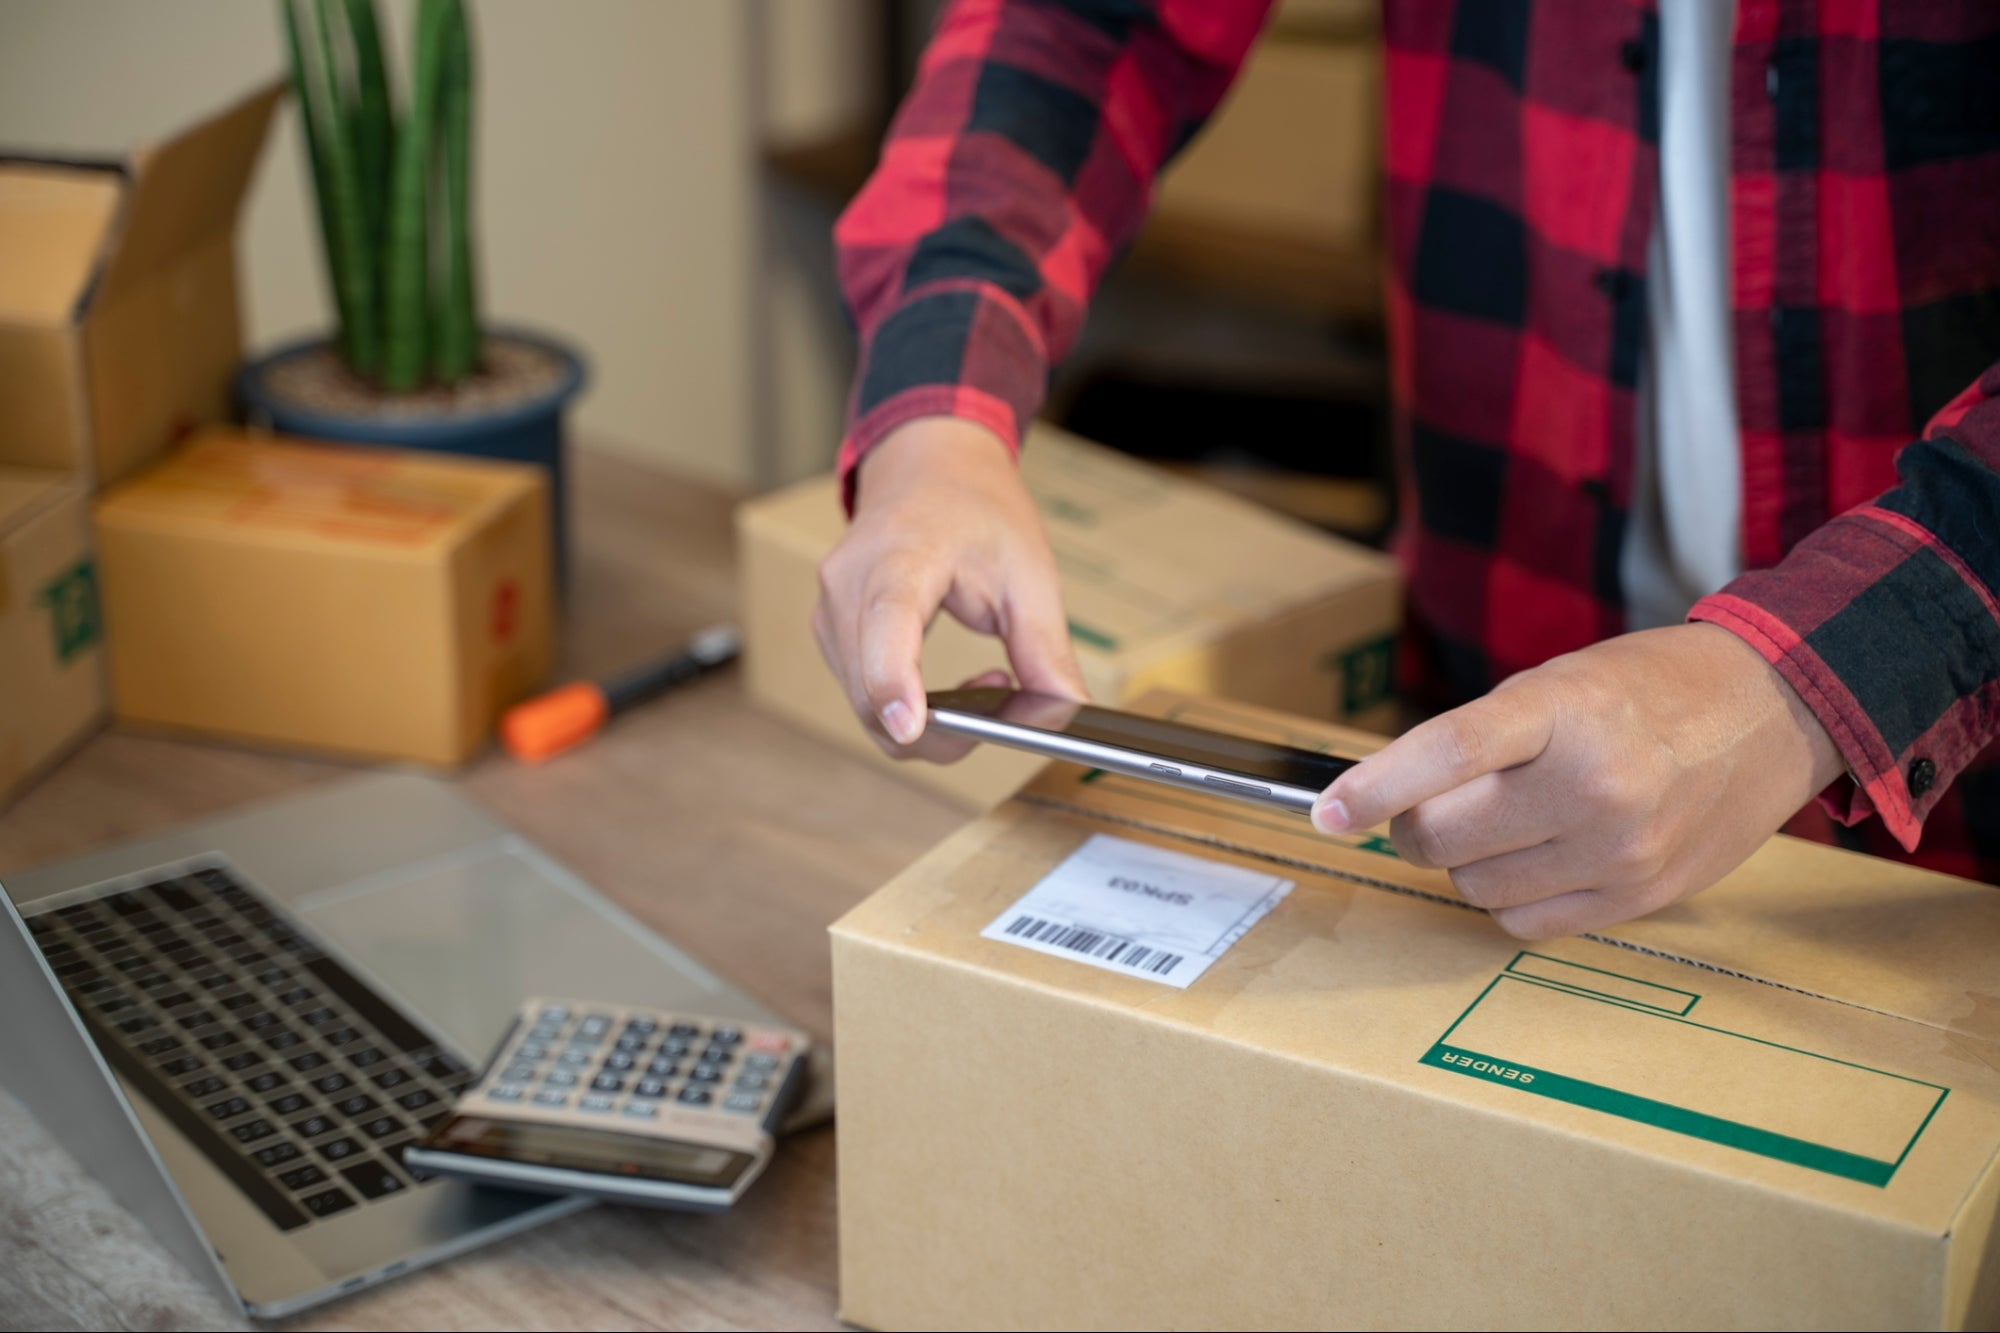 5 Things I Wish I Knew Before Starting a Dropshipping Business